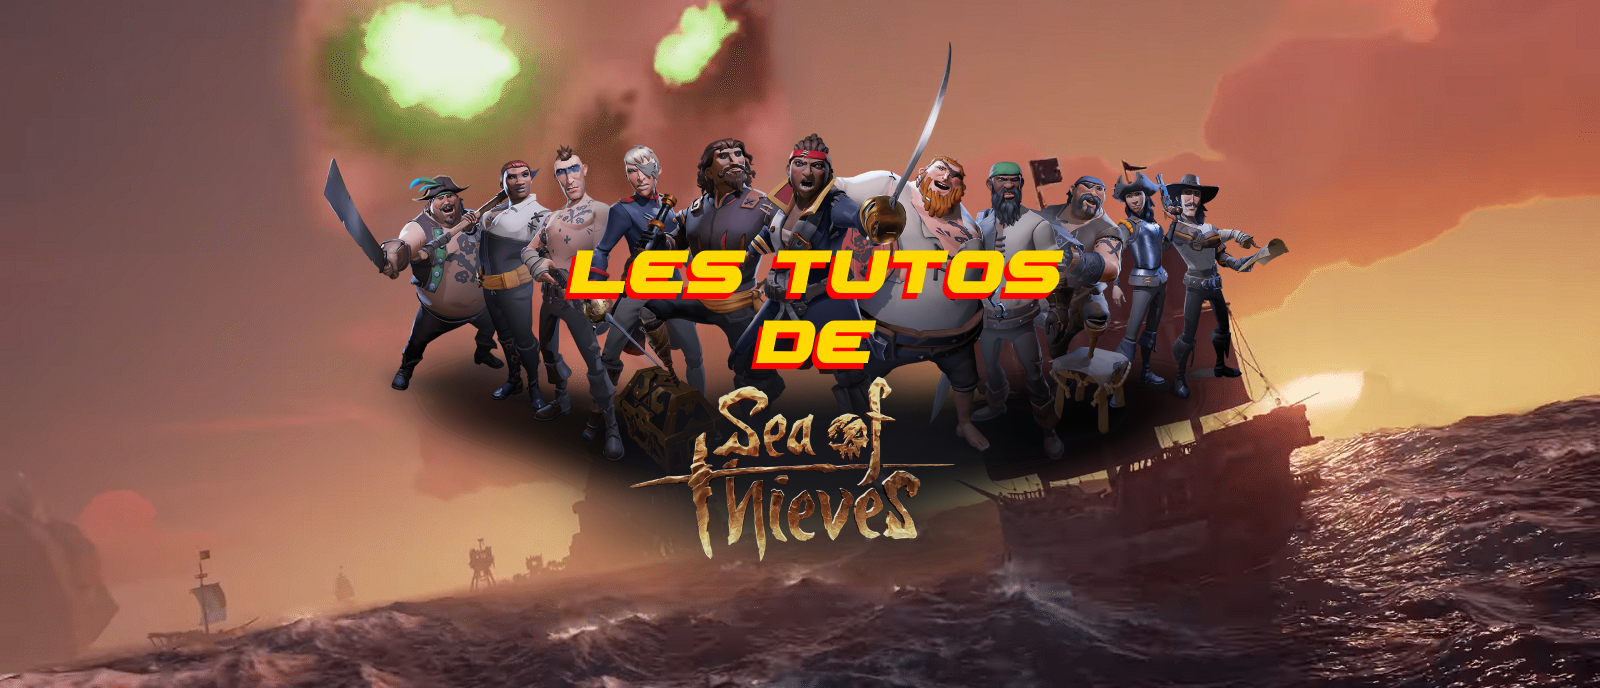 sea-of-thieves-natural-cloud-formation03